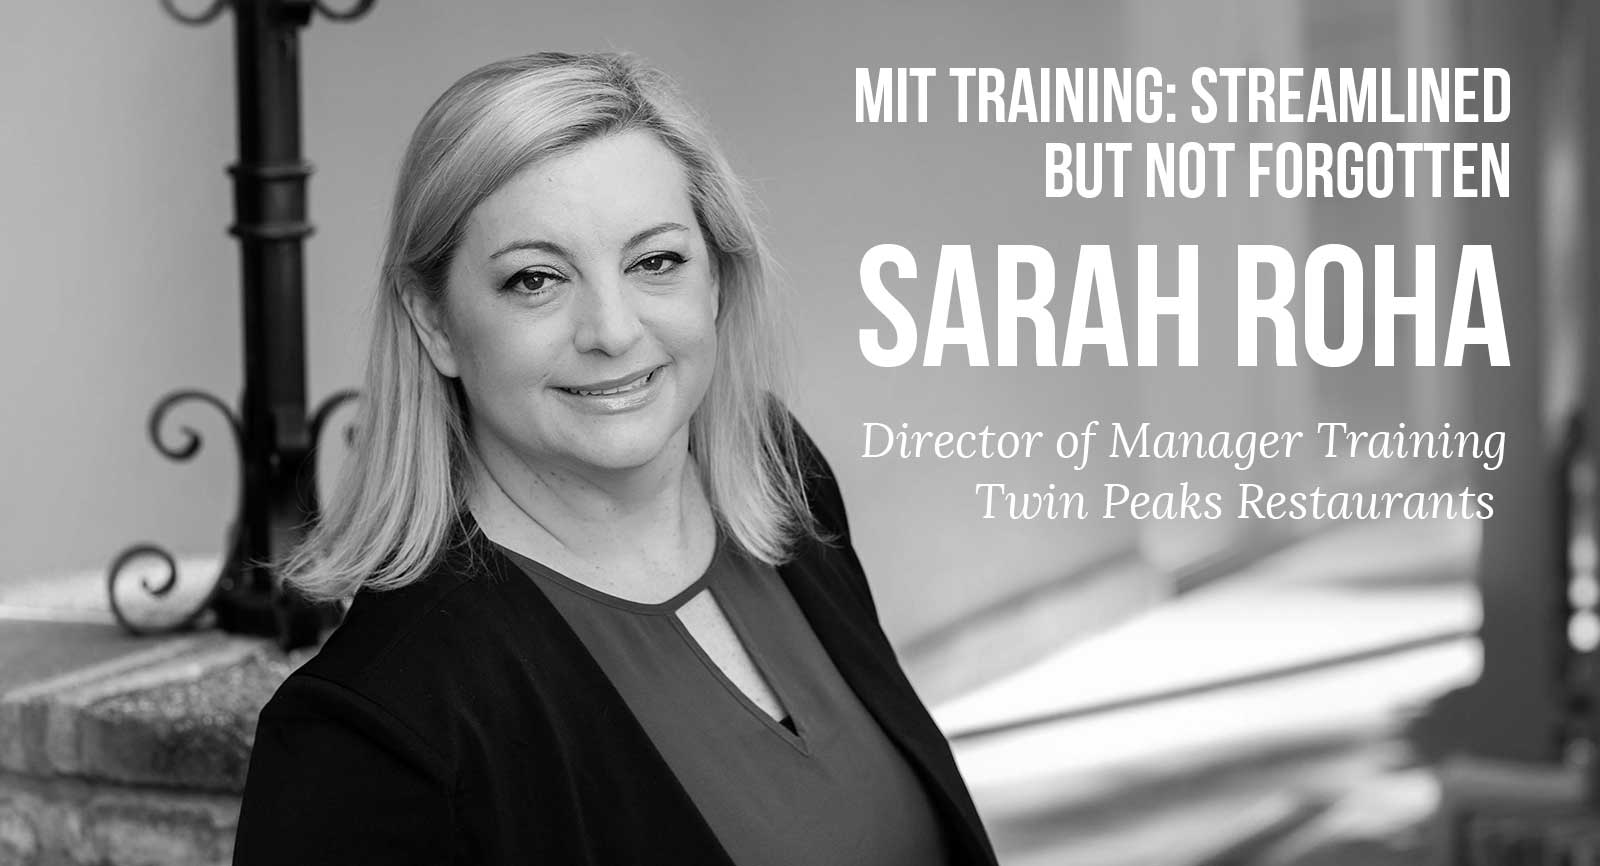 MIT Training: Streamlined But Not Forgotten - Sarah Roha, Director of Manager Training, Twin Peaks Restaurants